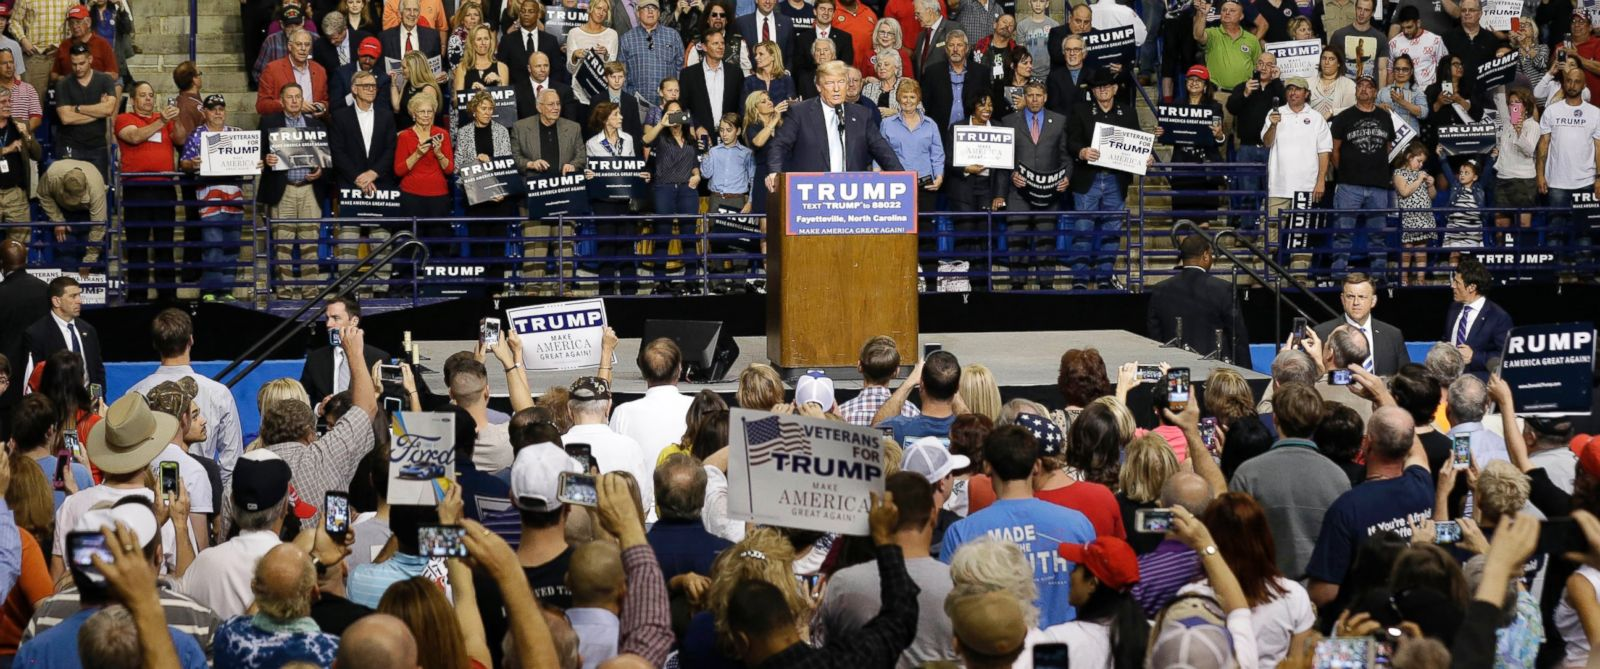 PHOTO: Republican presidential candidate Donald Trump speaks during a campaign rally in Fayetteville, N.C., March 9, 2016.